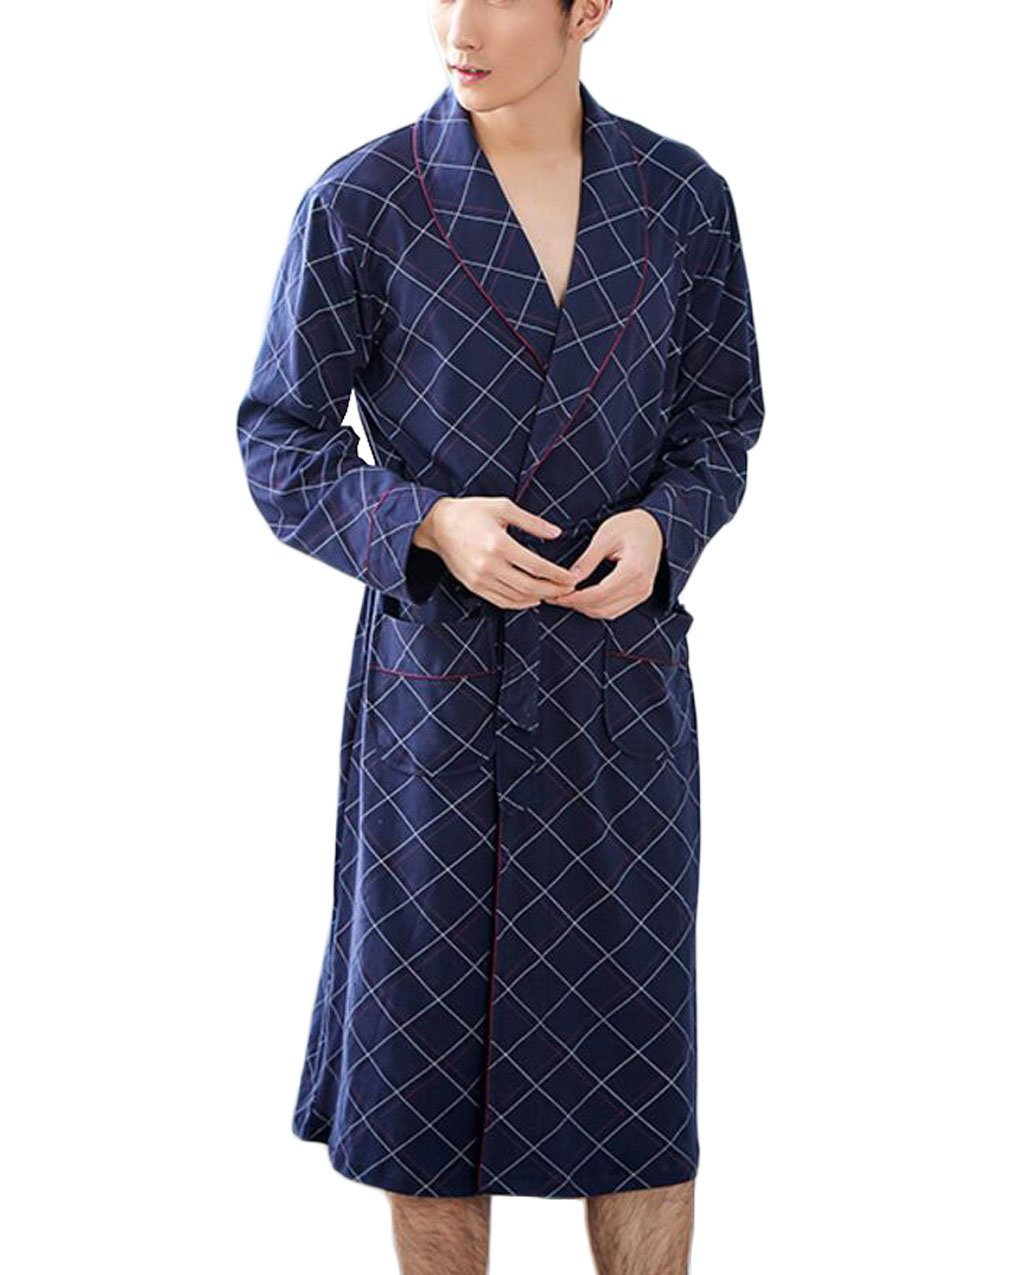 Men's Cotton Gown/Pajamas- Comfortable and Casual Bathrobe/Dressing Gown Autumn and Winter Home Clothing (Color : Blue, Size : M) DAFREW factory